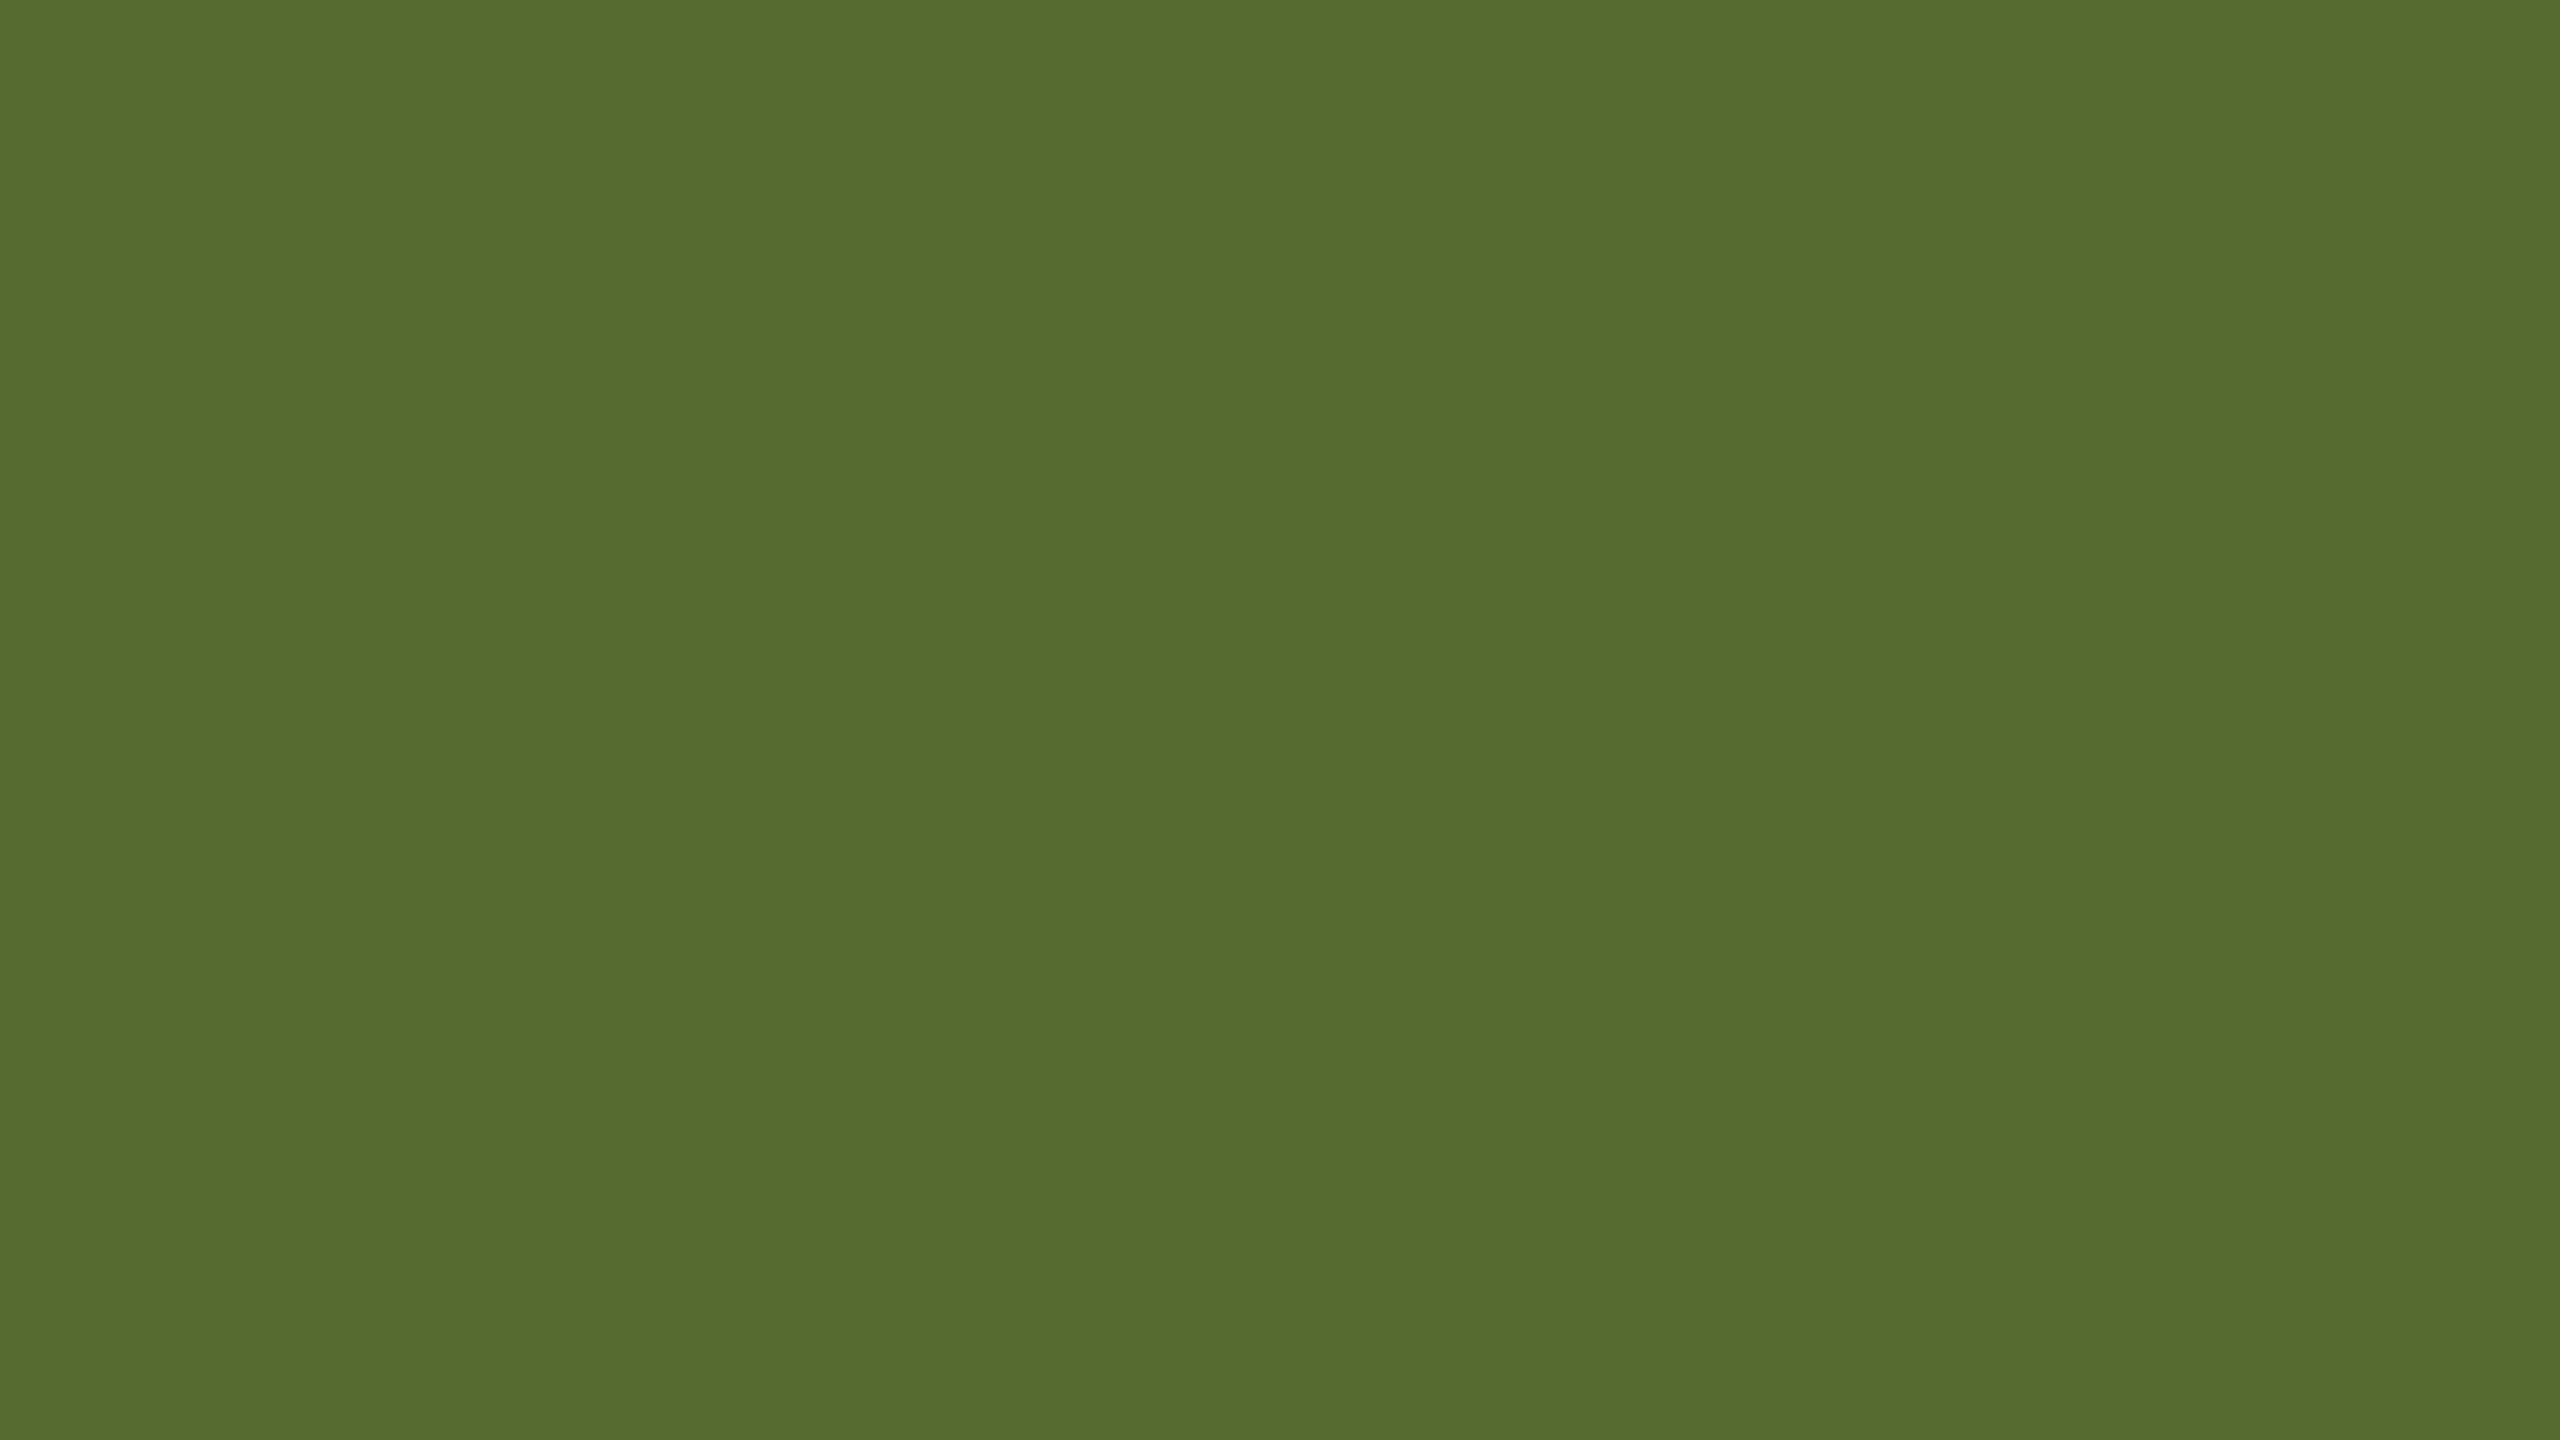 2560x1440 Dark Olive Green Solid Color Background